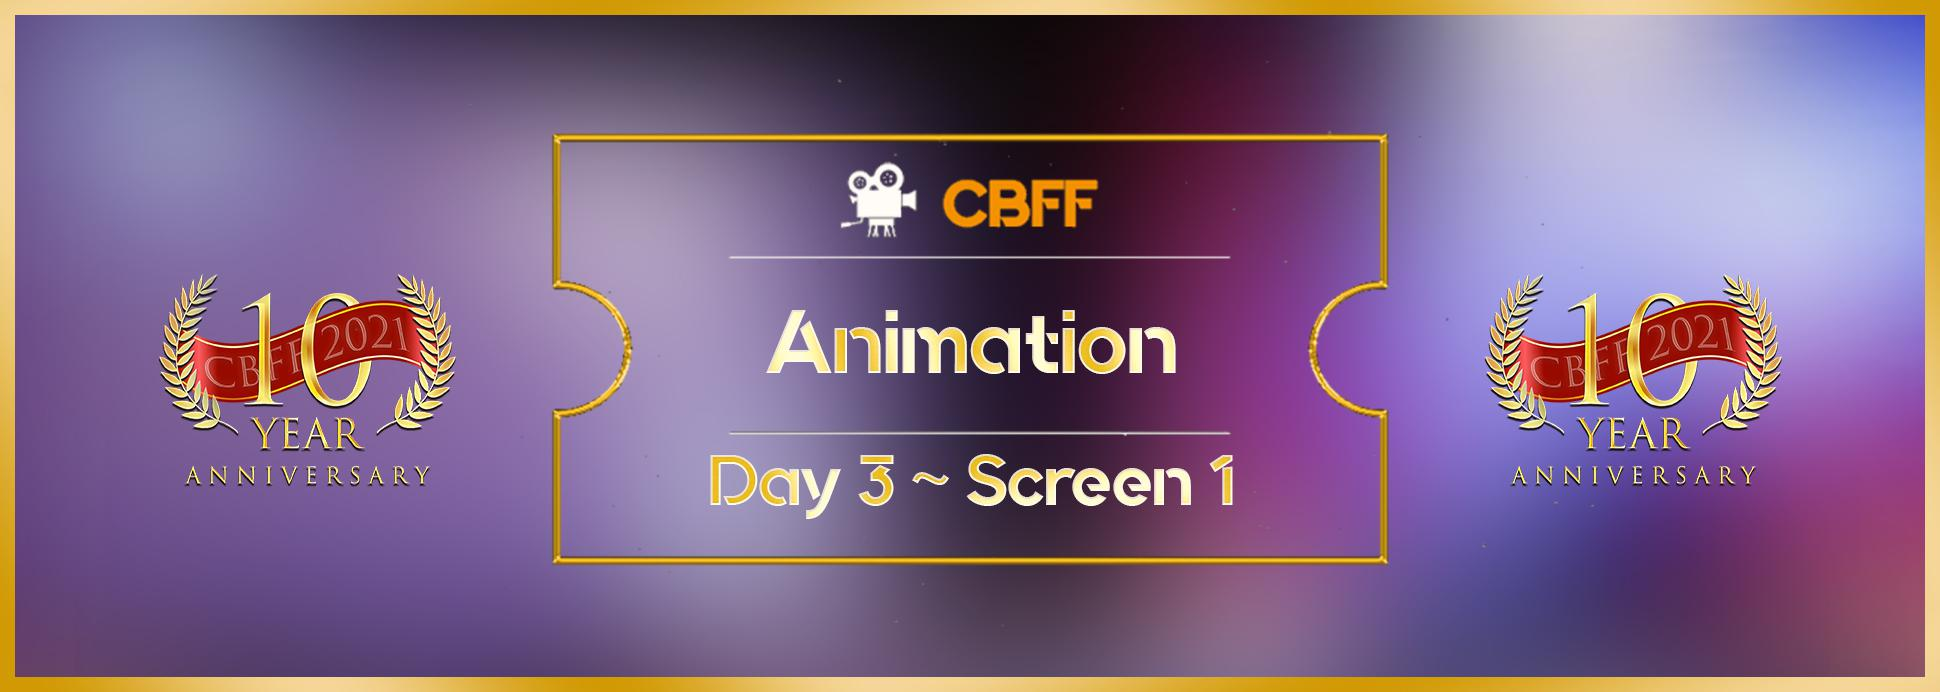 Day 3, Screen 1: Animation